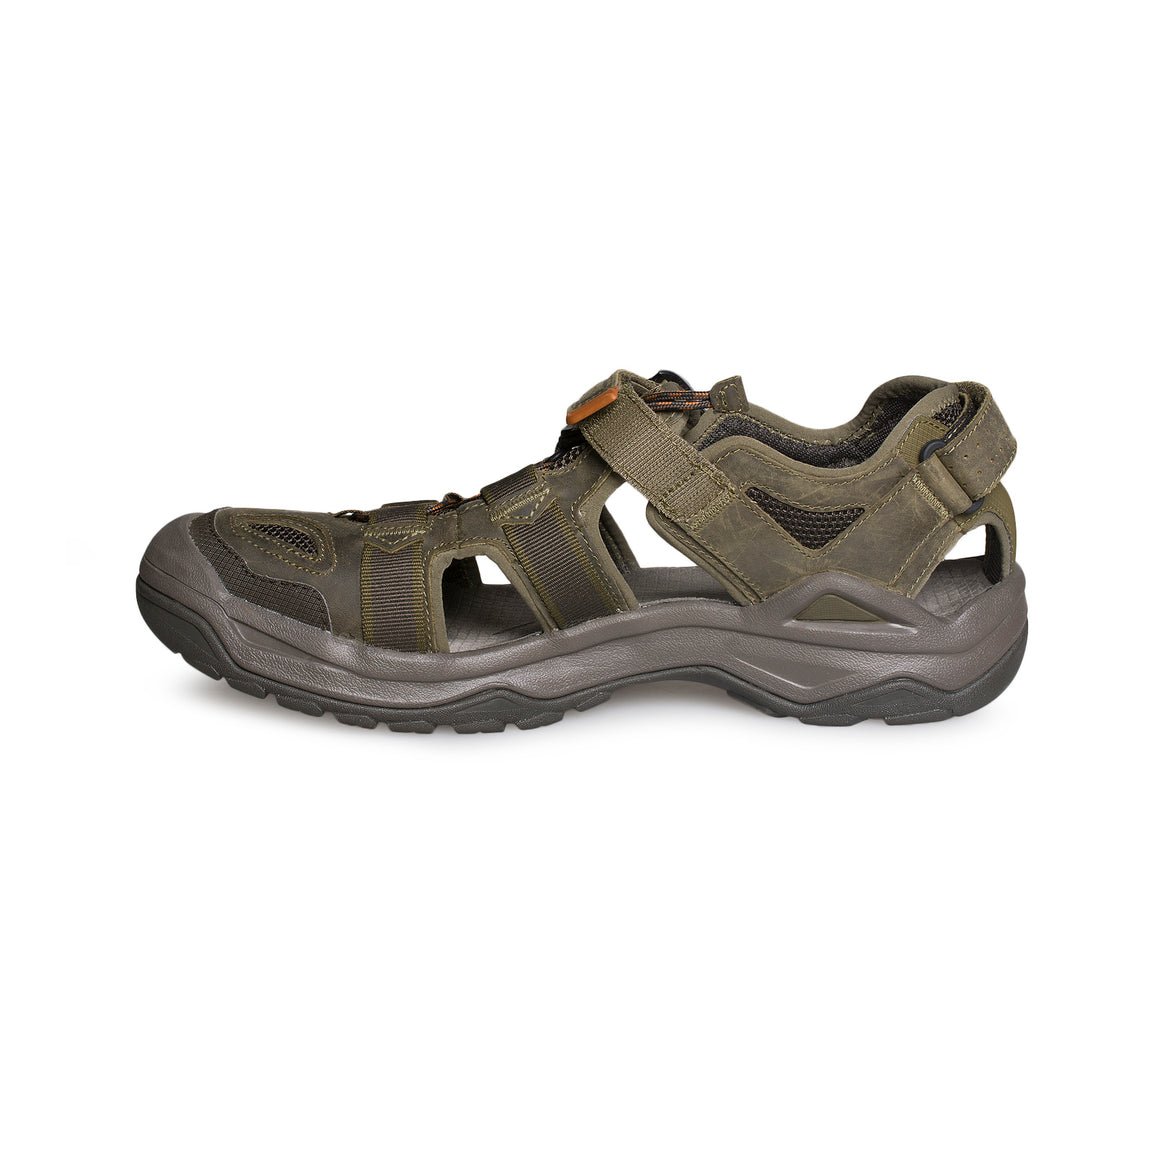 Teva Omnium 2 Leather Dark Olive Sandals - Men's